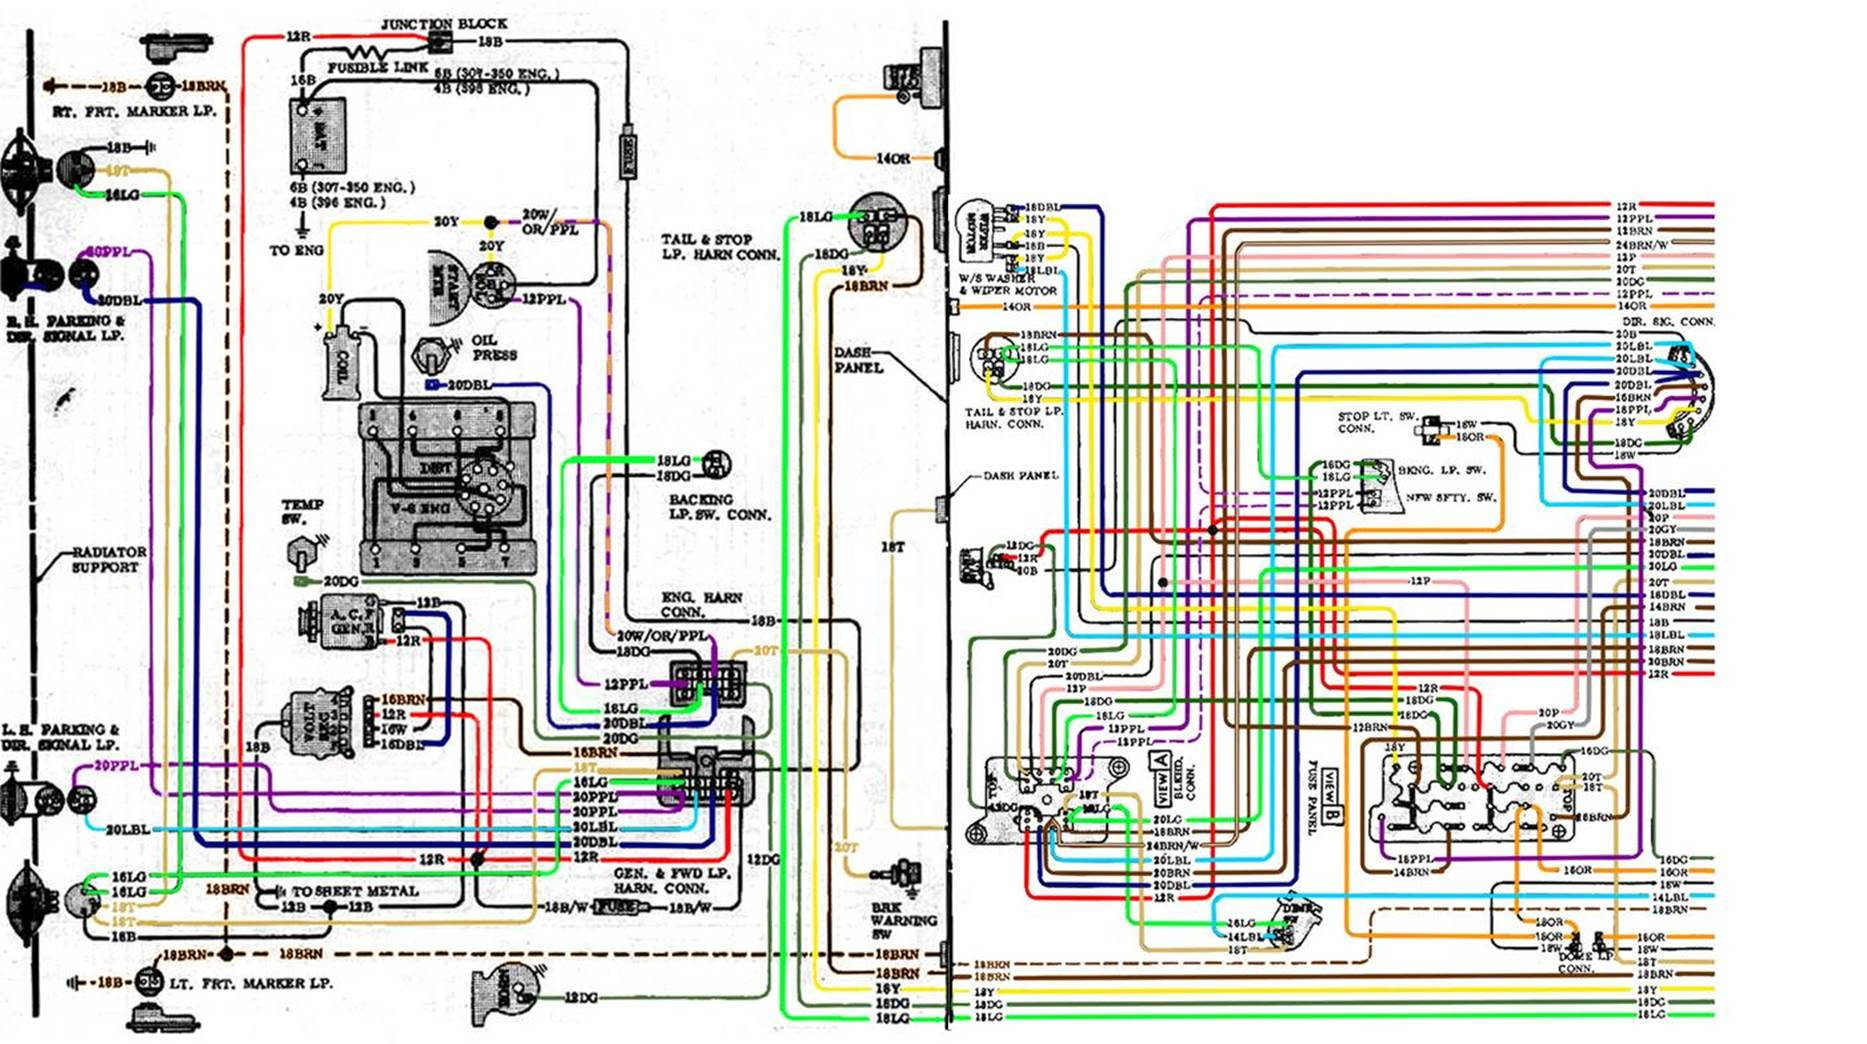 image002 67 72 chevy wiring diagram 78 chevy truck wiring diagram at readyjetset.co